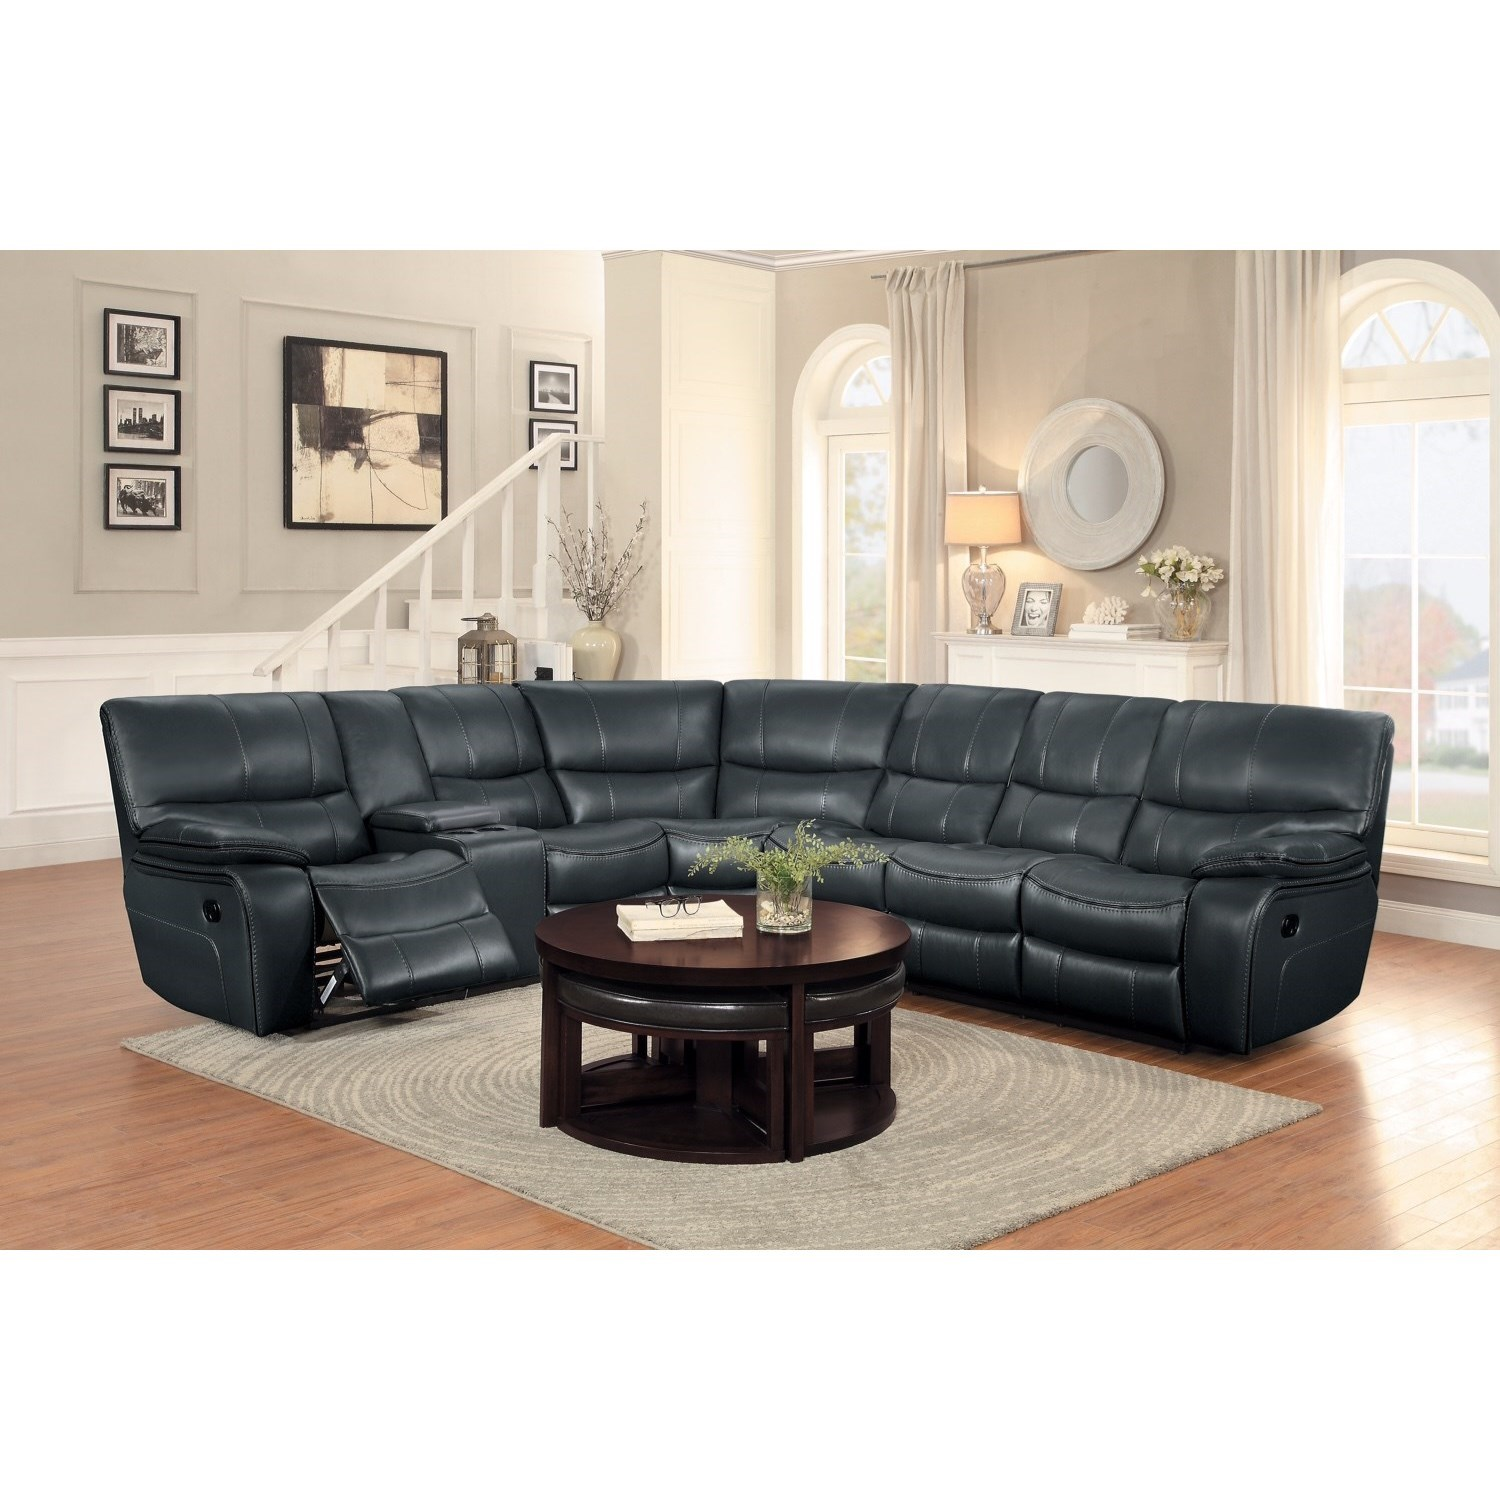 Homelegance Pecos Casual Sectional Sofa with Console and